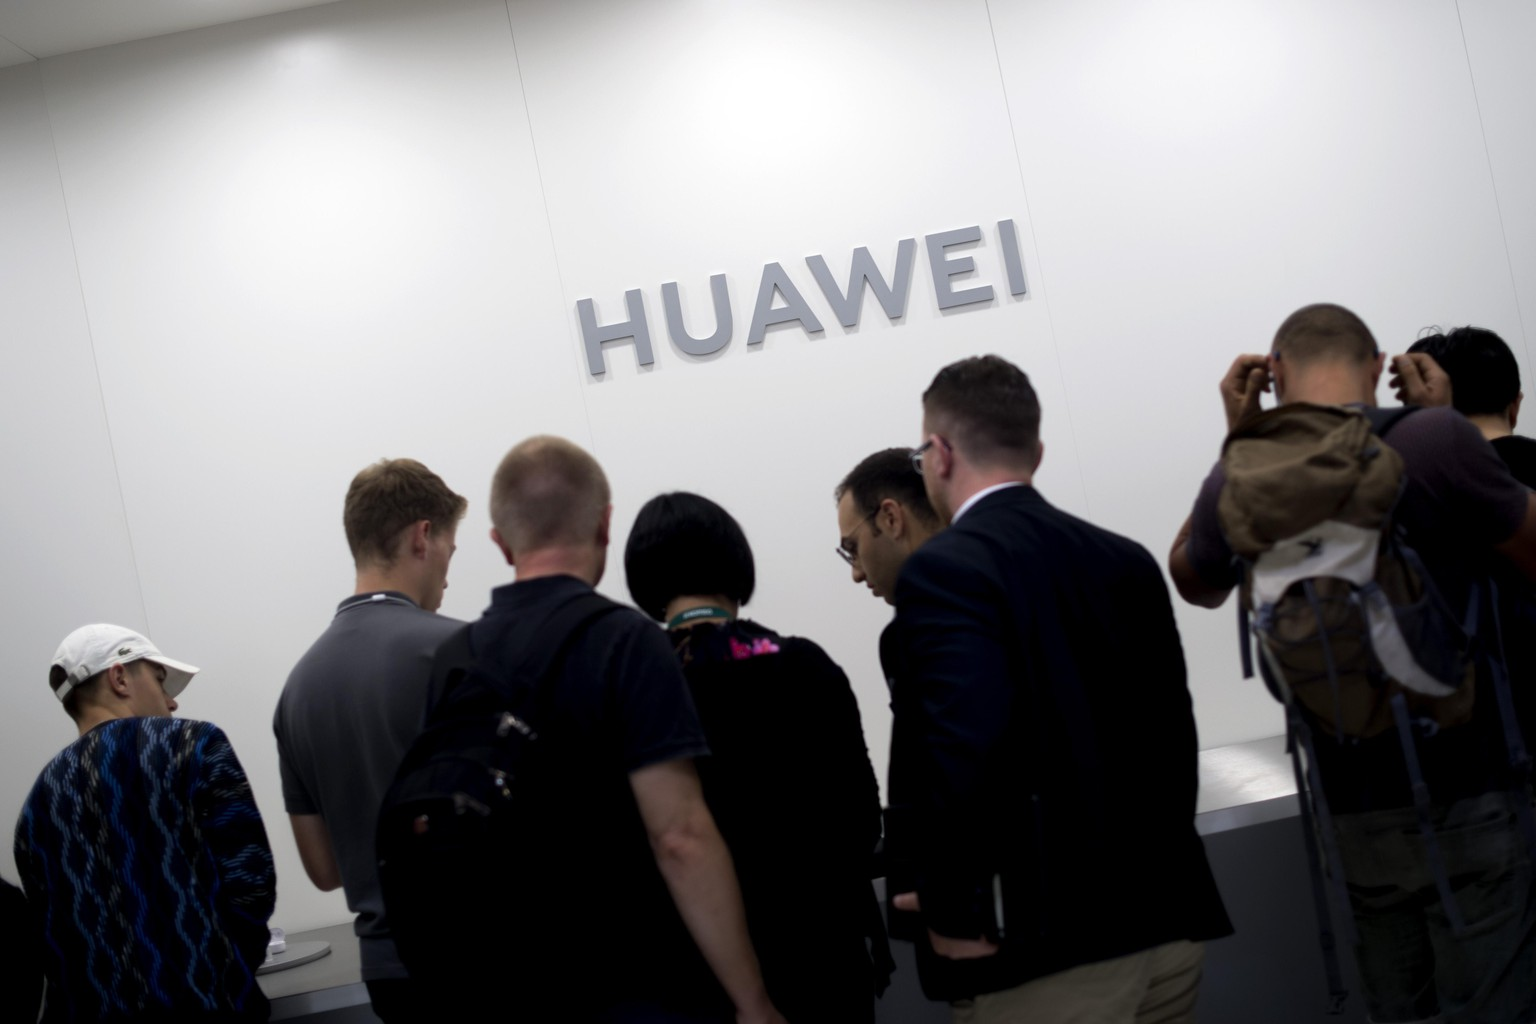 IFA Berlin Deu, Deutschland, Germany, Berlin, 10.09.2019 Besucher am Stand von Huawei promoting das neue P30 Pro smartphone mit Android 10 auf der ifa, Internationale Funkausstellung, Messe fuer Unterhaltung, Unterhaltungselektronik in Berlin 2019. Visitors at the booth of Huawei promoting its P30 Pro smartphone at the Consumer Electronics Fair ifa, International Funkausstellung in Berlin, Germany. IFA is Europe s largest consumer electronics and home appliances fair, showing the new technology trends in the world. The 2019 IFA fair will be open to the public from September 6-11 2019 and features the global technology industry.